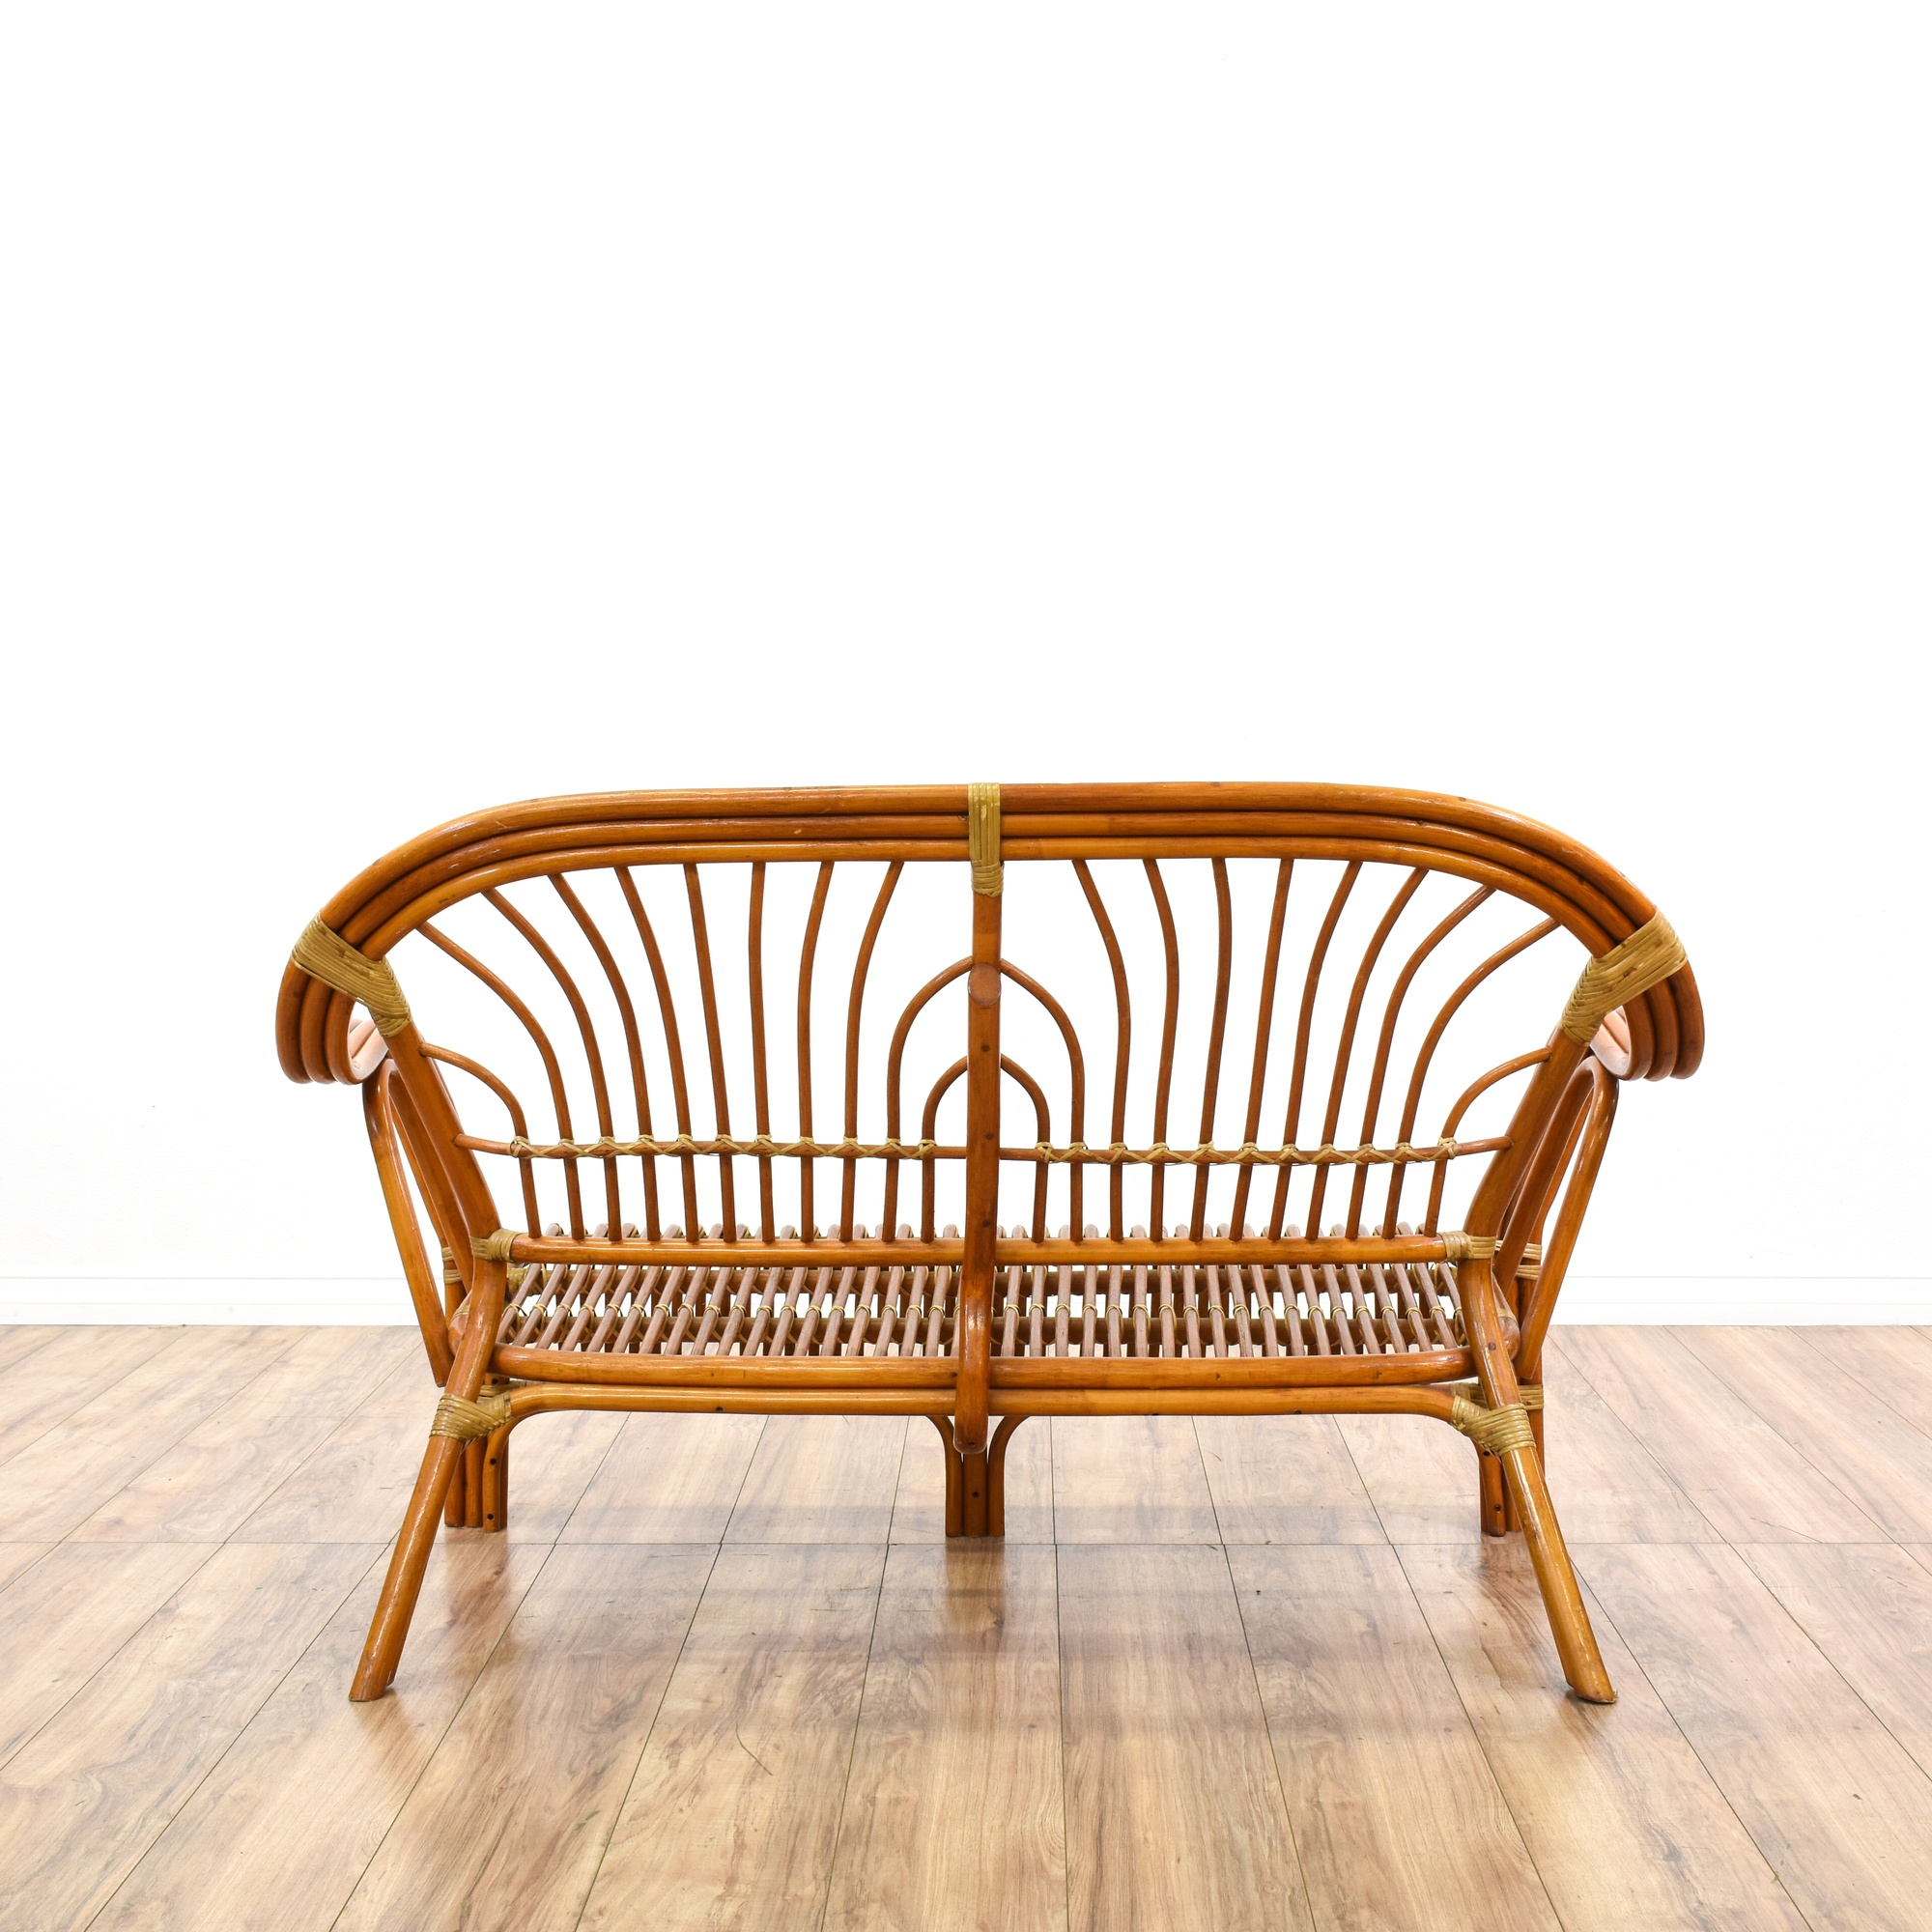 Bohemian Curved Rattan Loveseat Sofa Loveseat Vintage